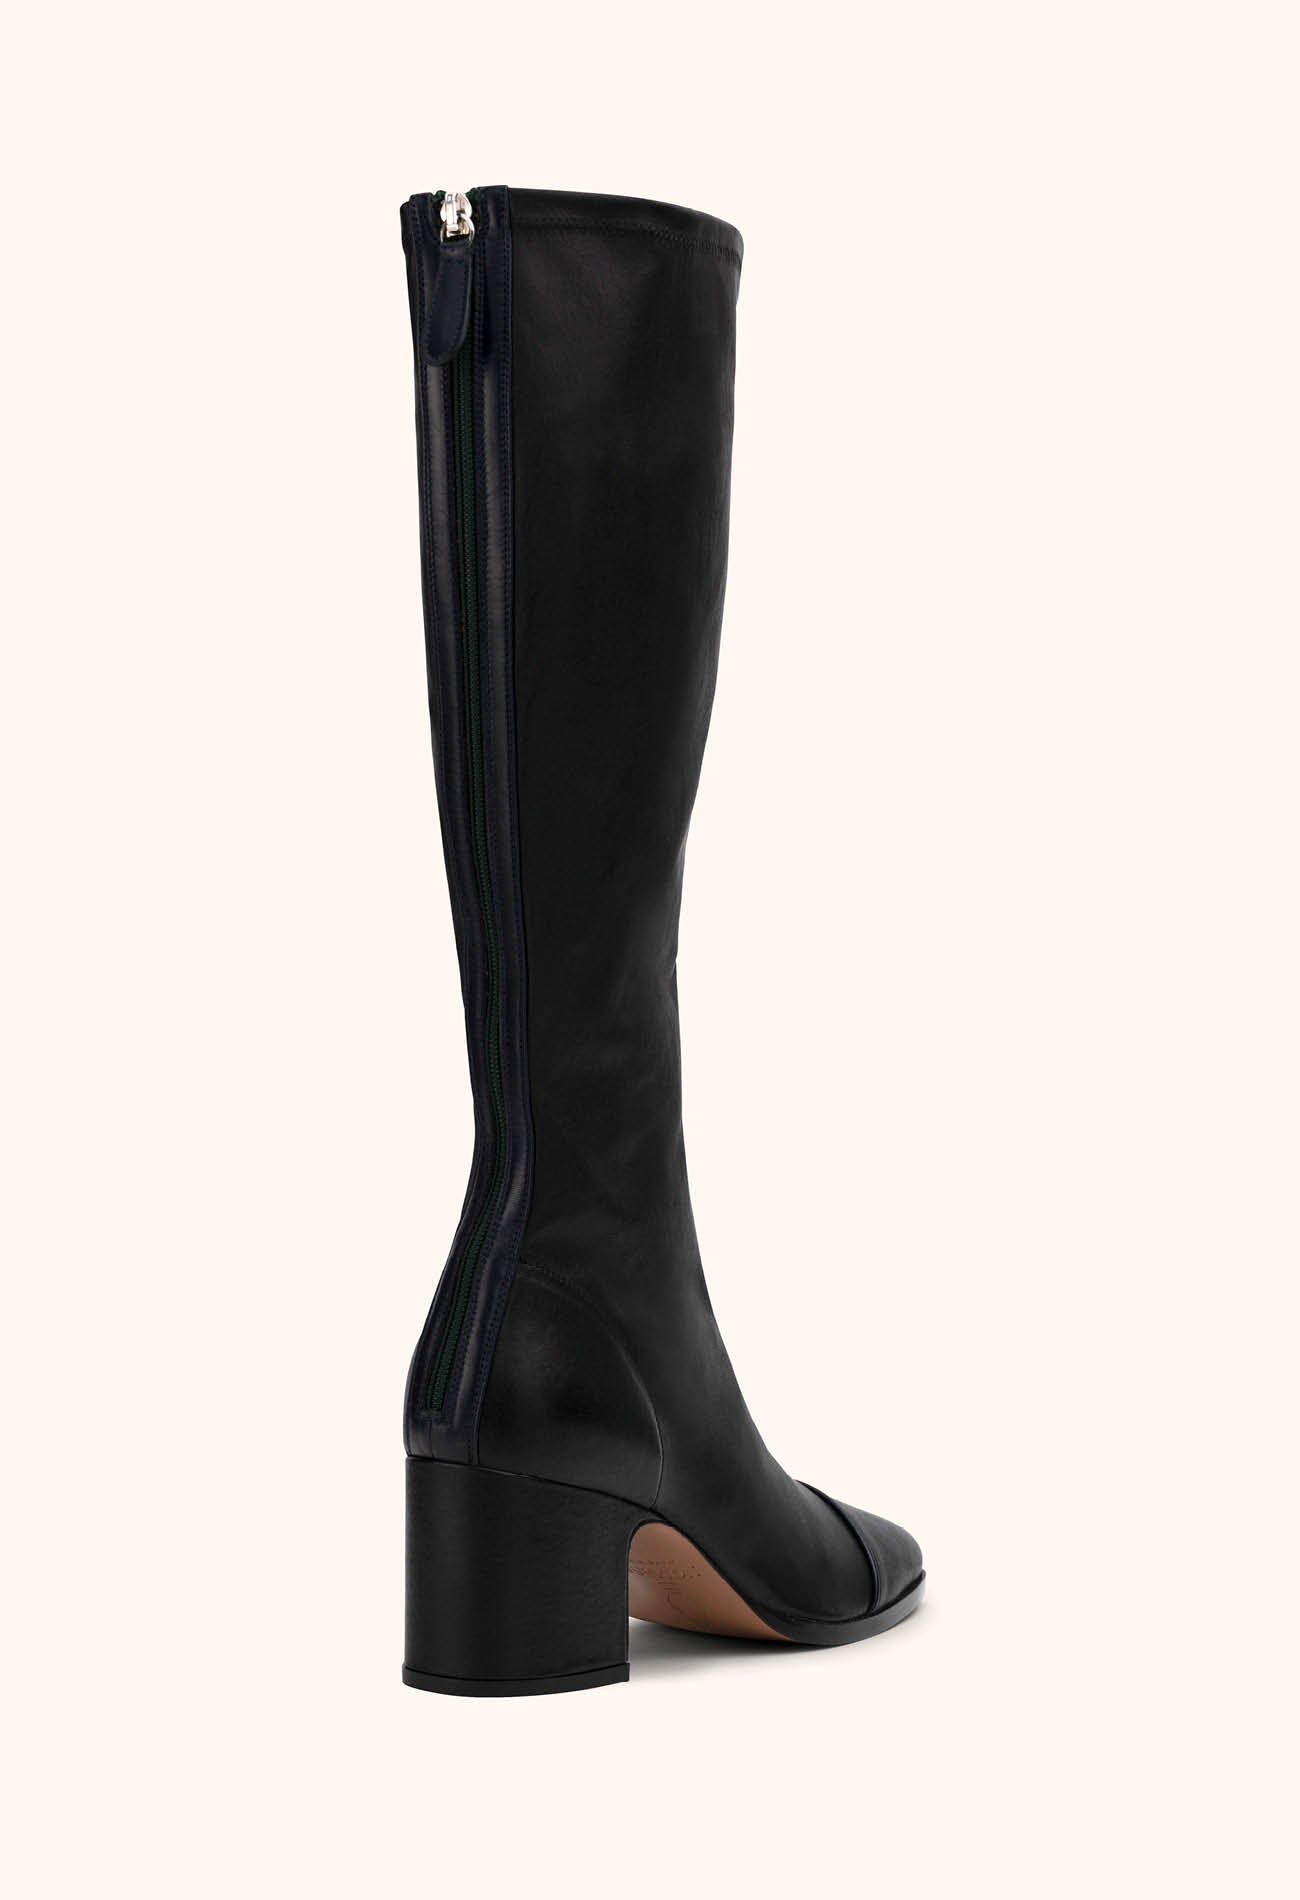 Twist boot in Black stretch nappa